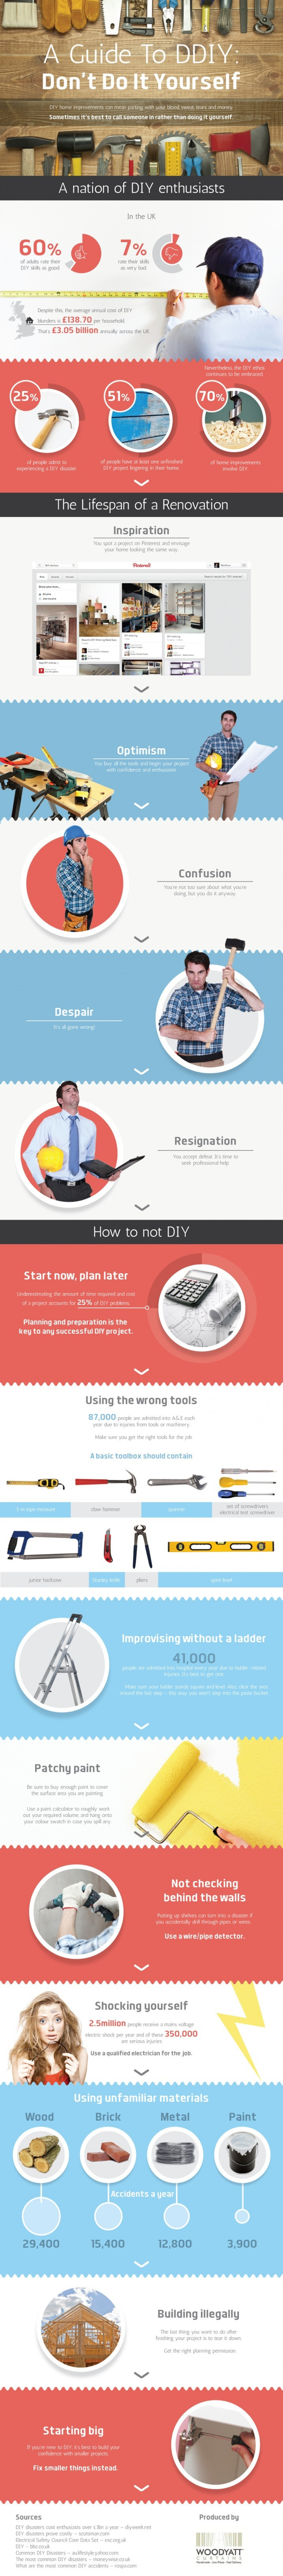 A Guide TO DDIY: Don't Do It Yourself Infographic